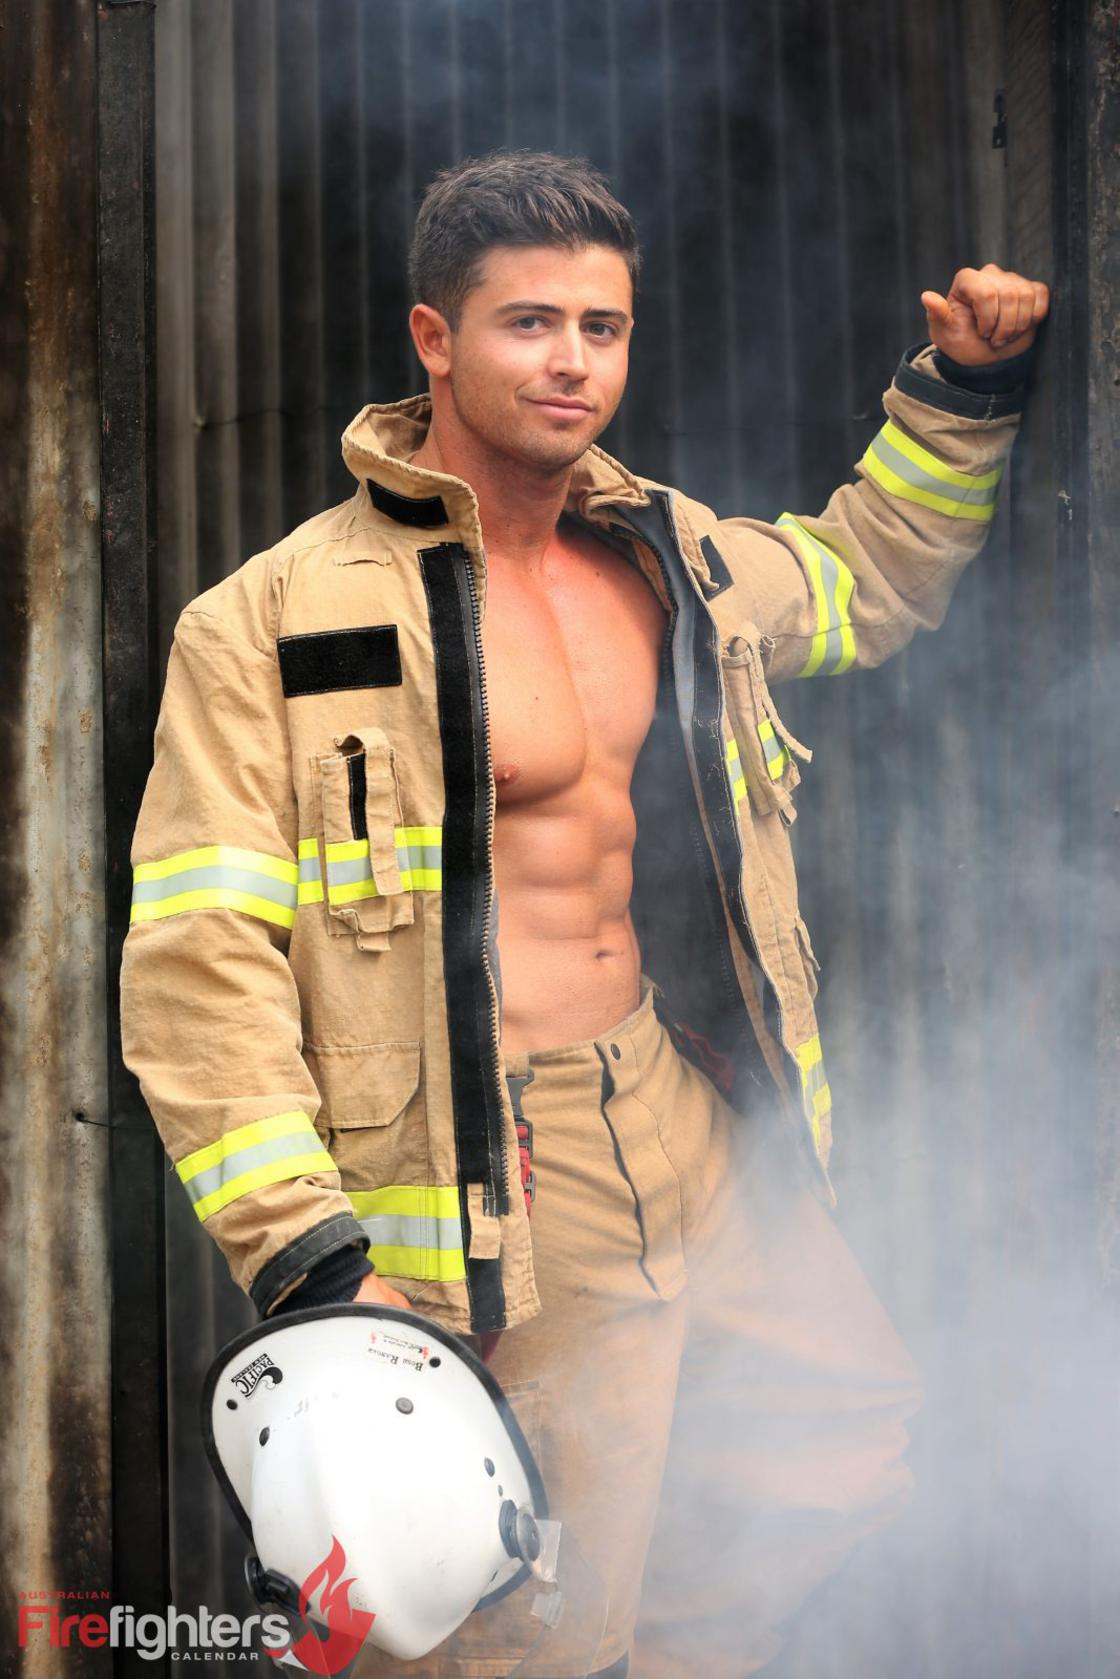 Muscles and Cute Puppies – Australian firefighters know how to sell calendars